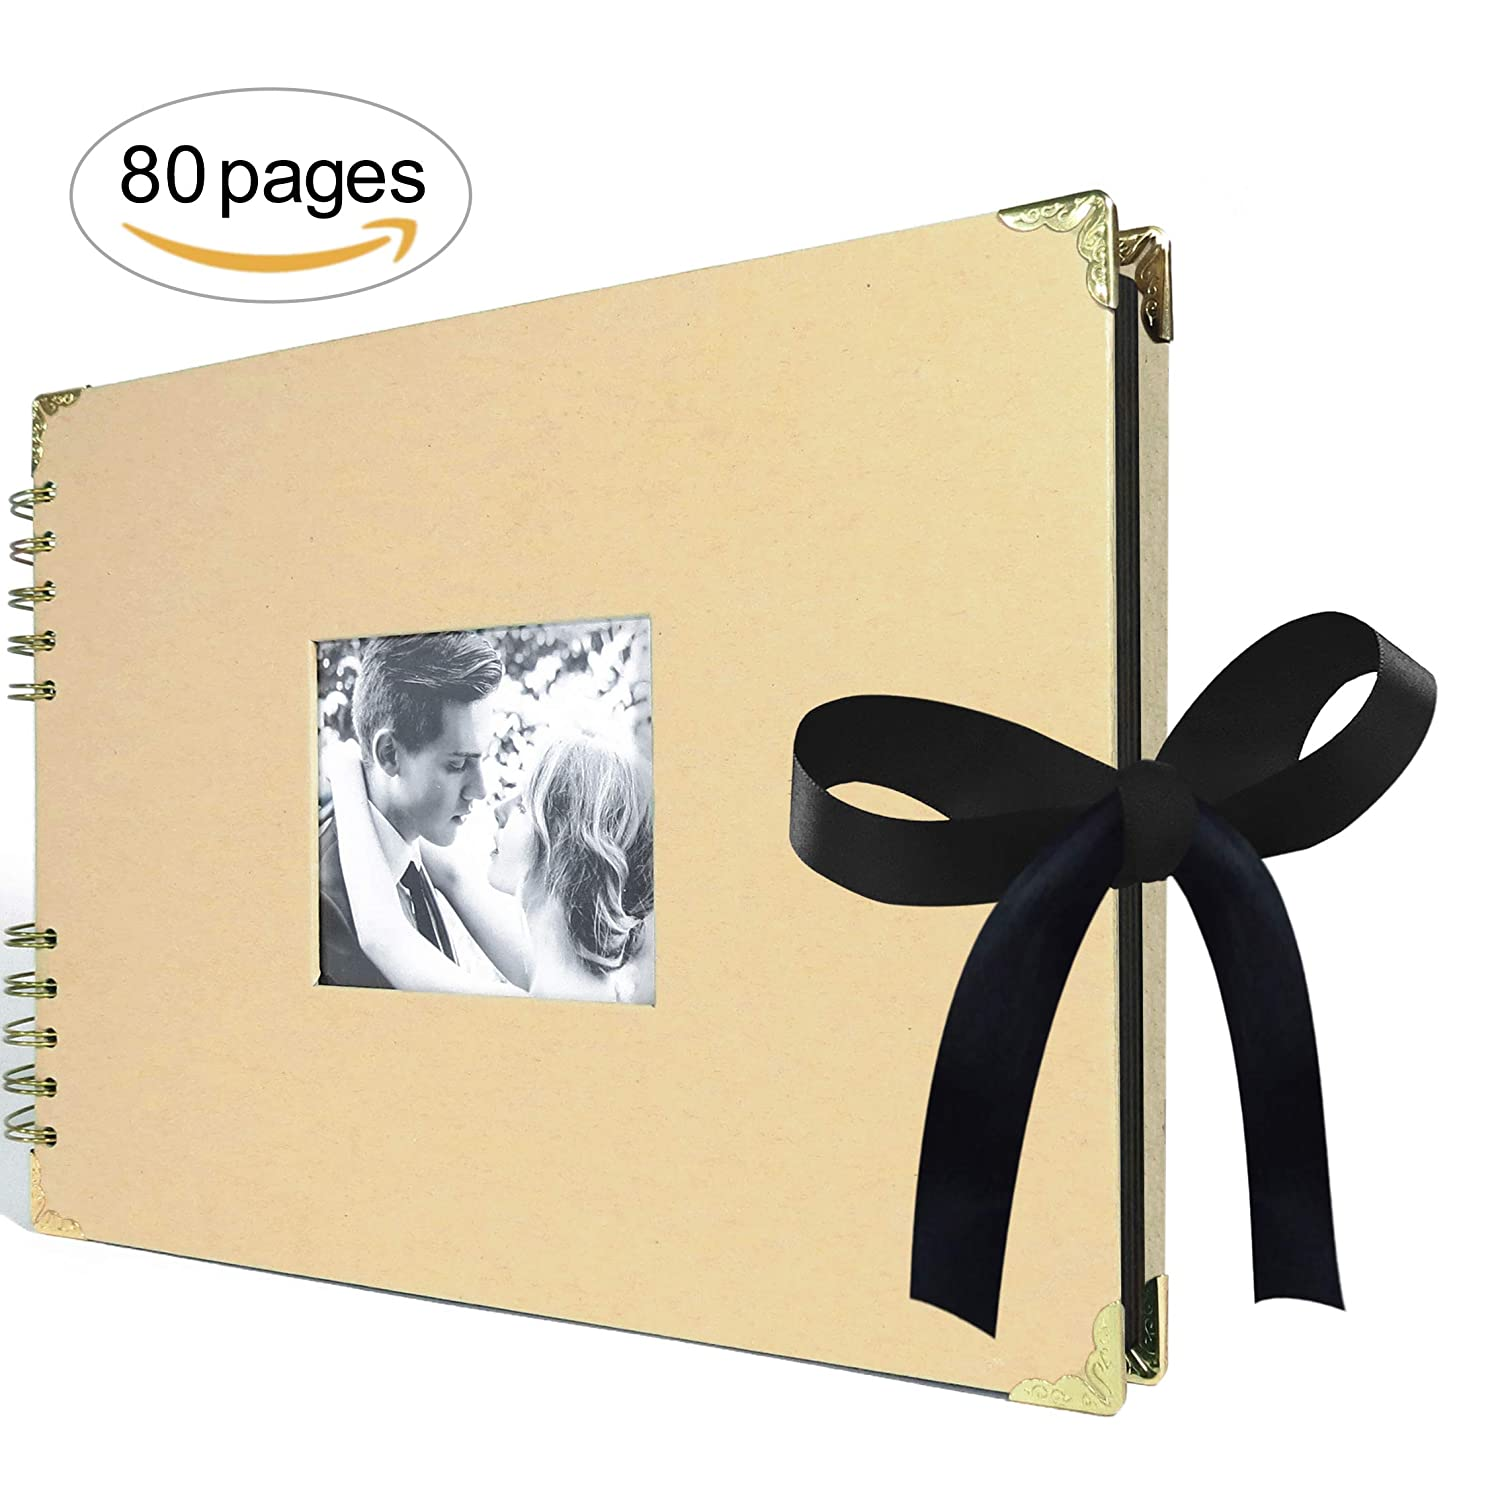 Scrapbook Photo Album - Large - 12.6 x 8.6 - Golden Features & 80 Large Black Pages – Ideal Wedding Scrapbook, Baby, Anniversary, Gift Album – Scrap Book R-tistic Flair